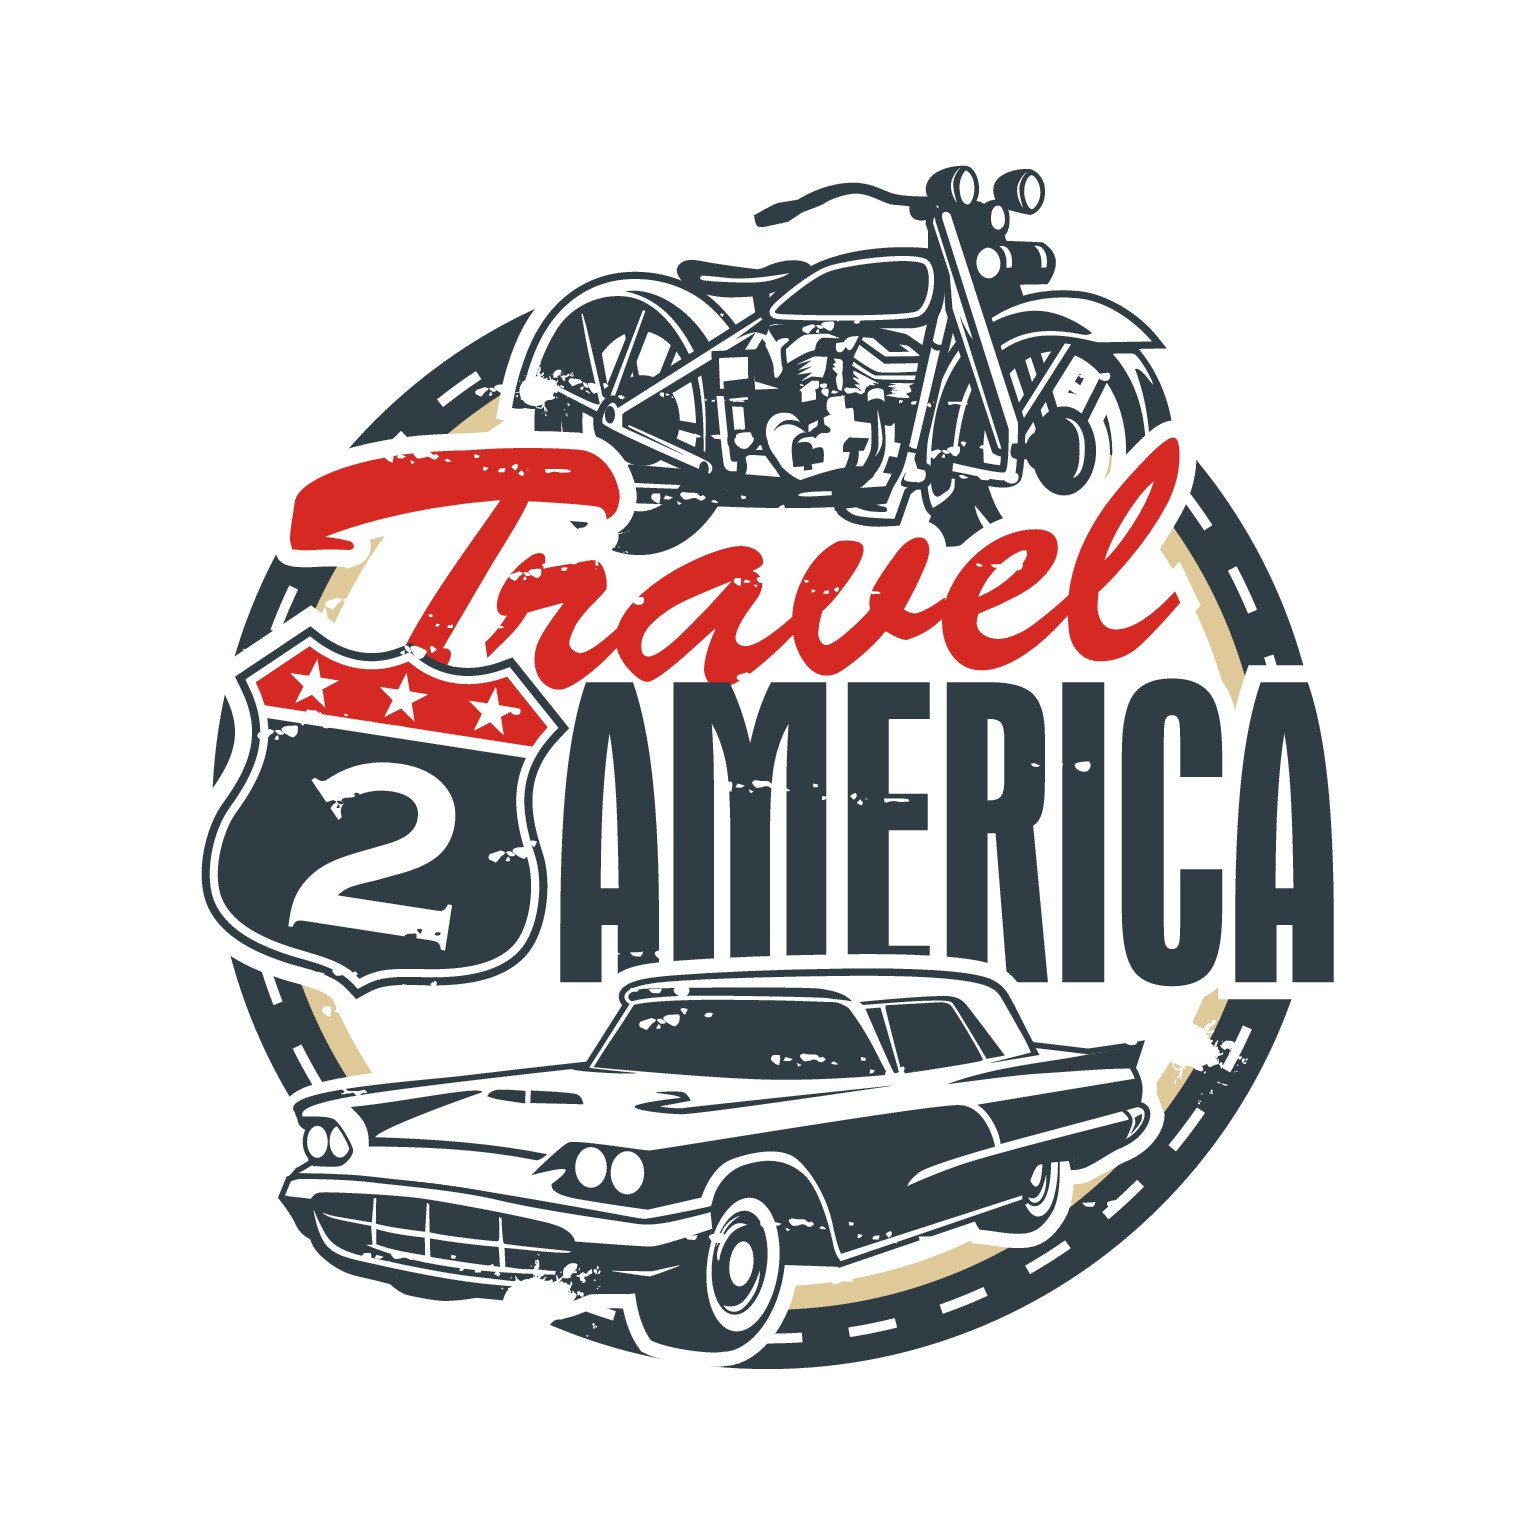 please create a vintage logo for traveling in America by motorbike or car. To see the logo is to go!